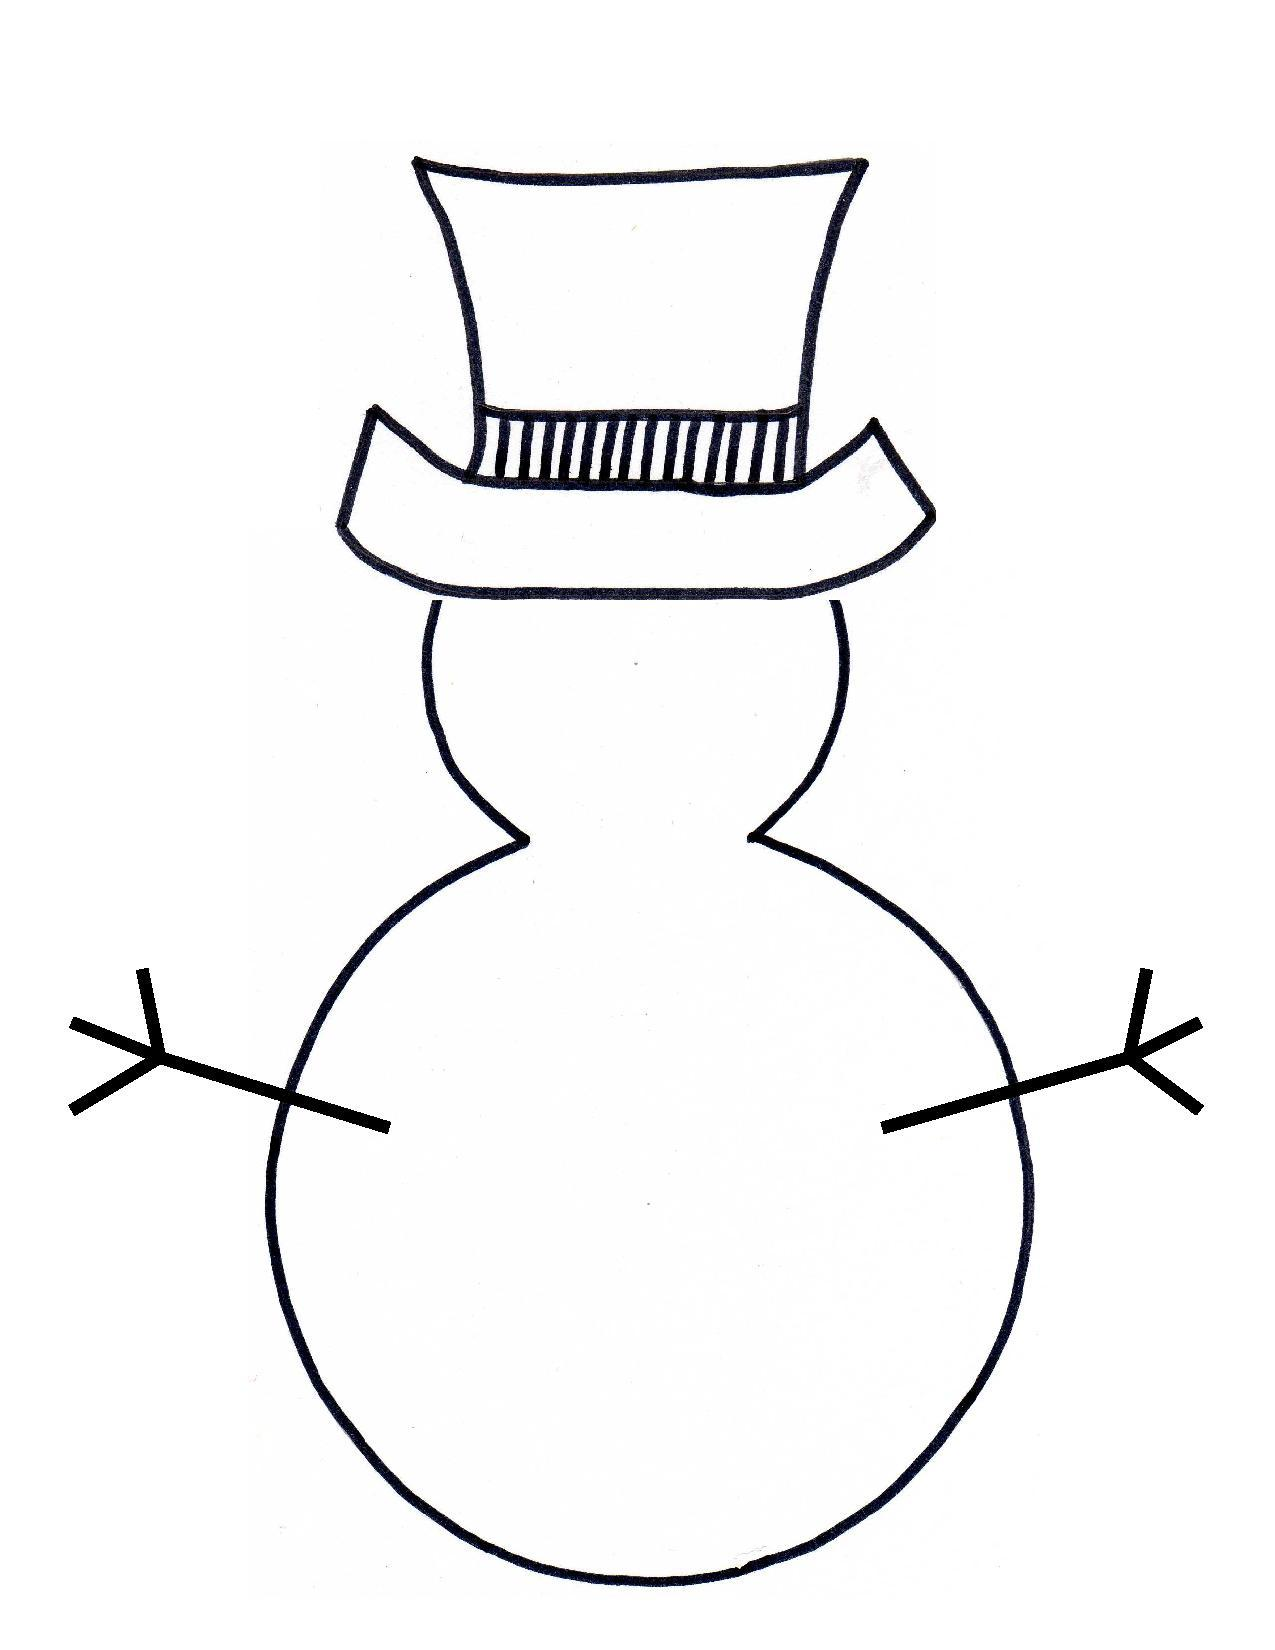 Snowman outline clipart best for Snowman templates free